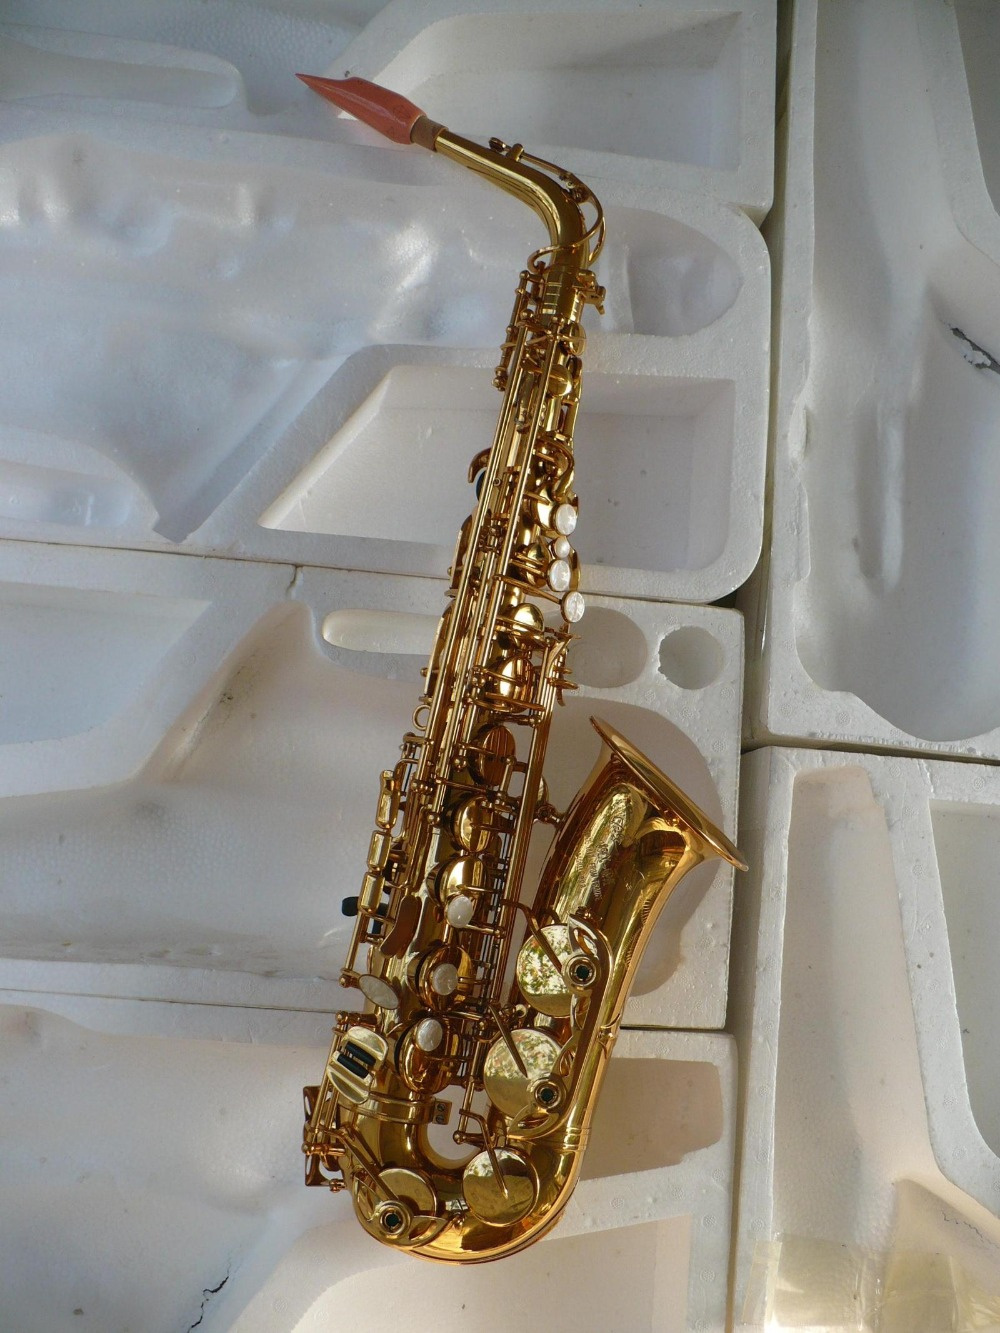 Spike price mid grade imitation gold paint law selmer802 paragraph Sa old man font b saxophone